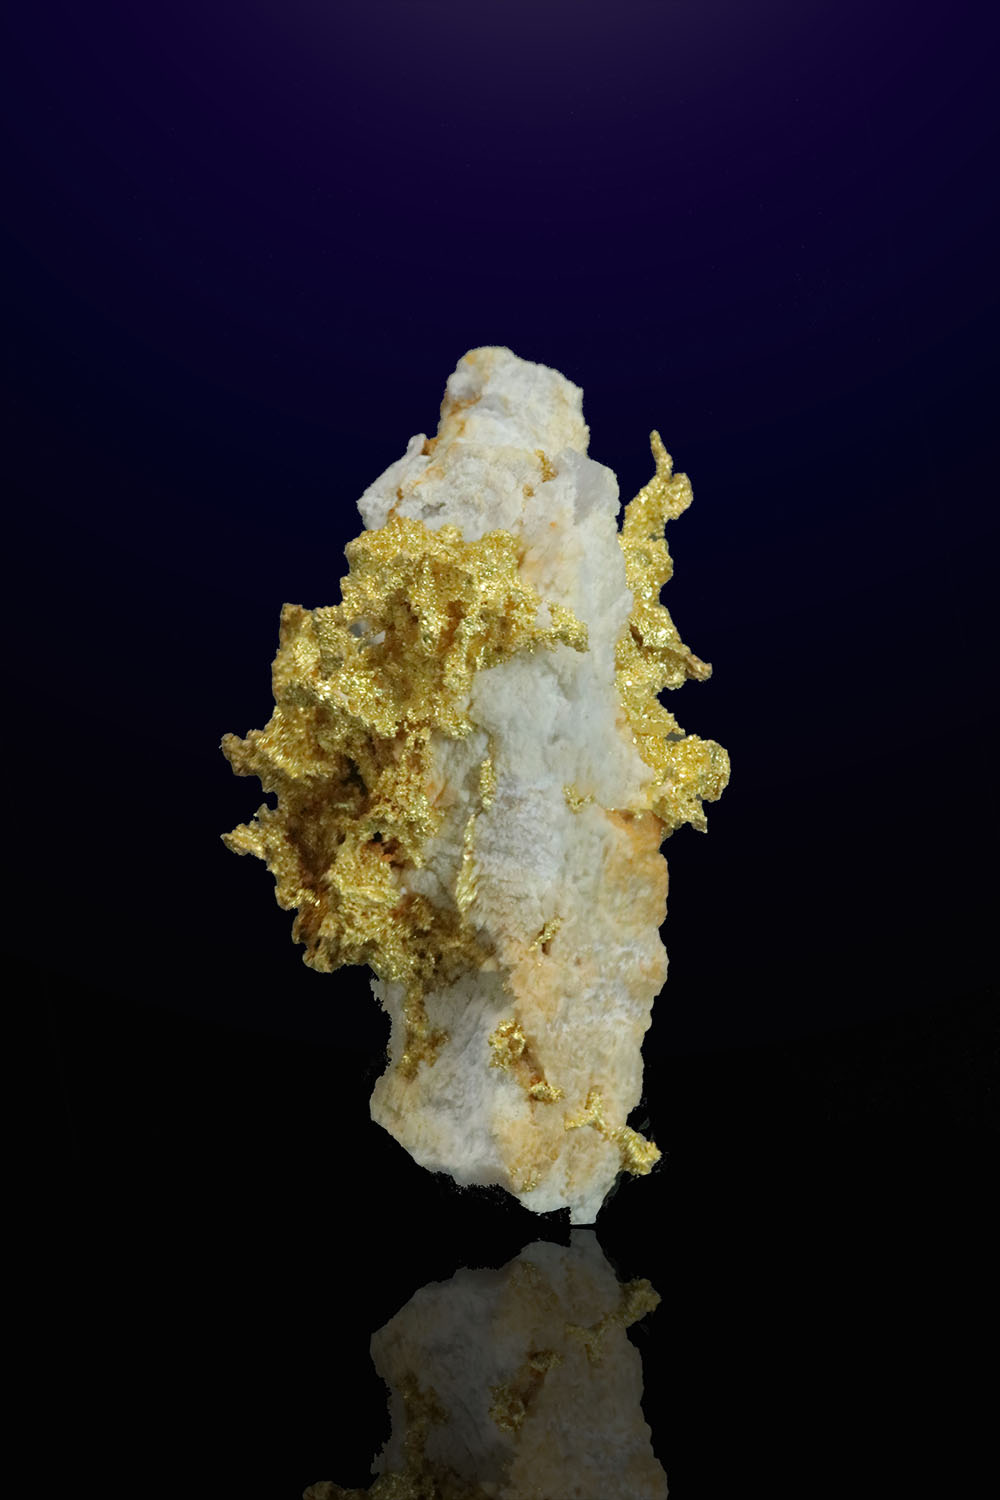 Gold in Quartz Specimen - GG Claims, California